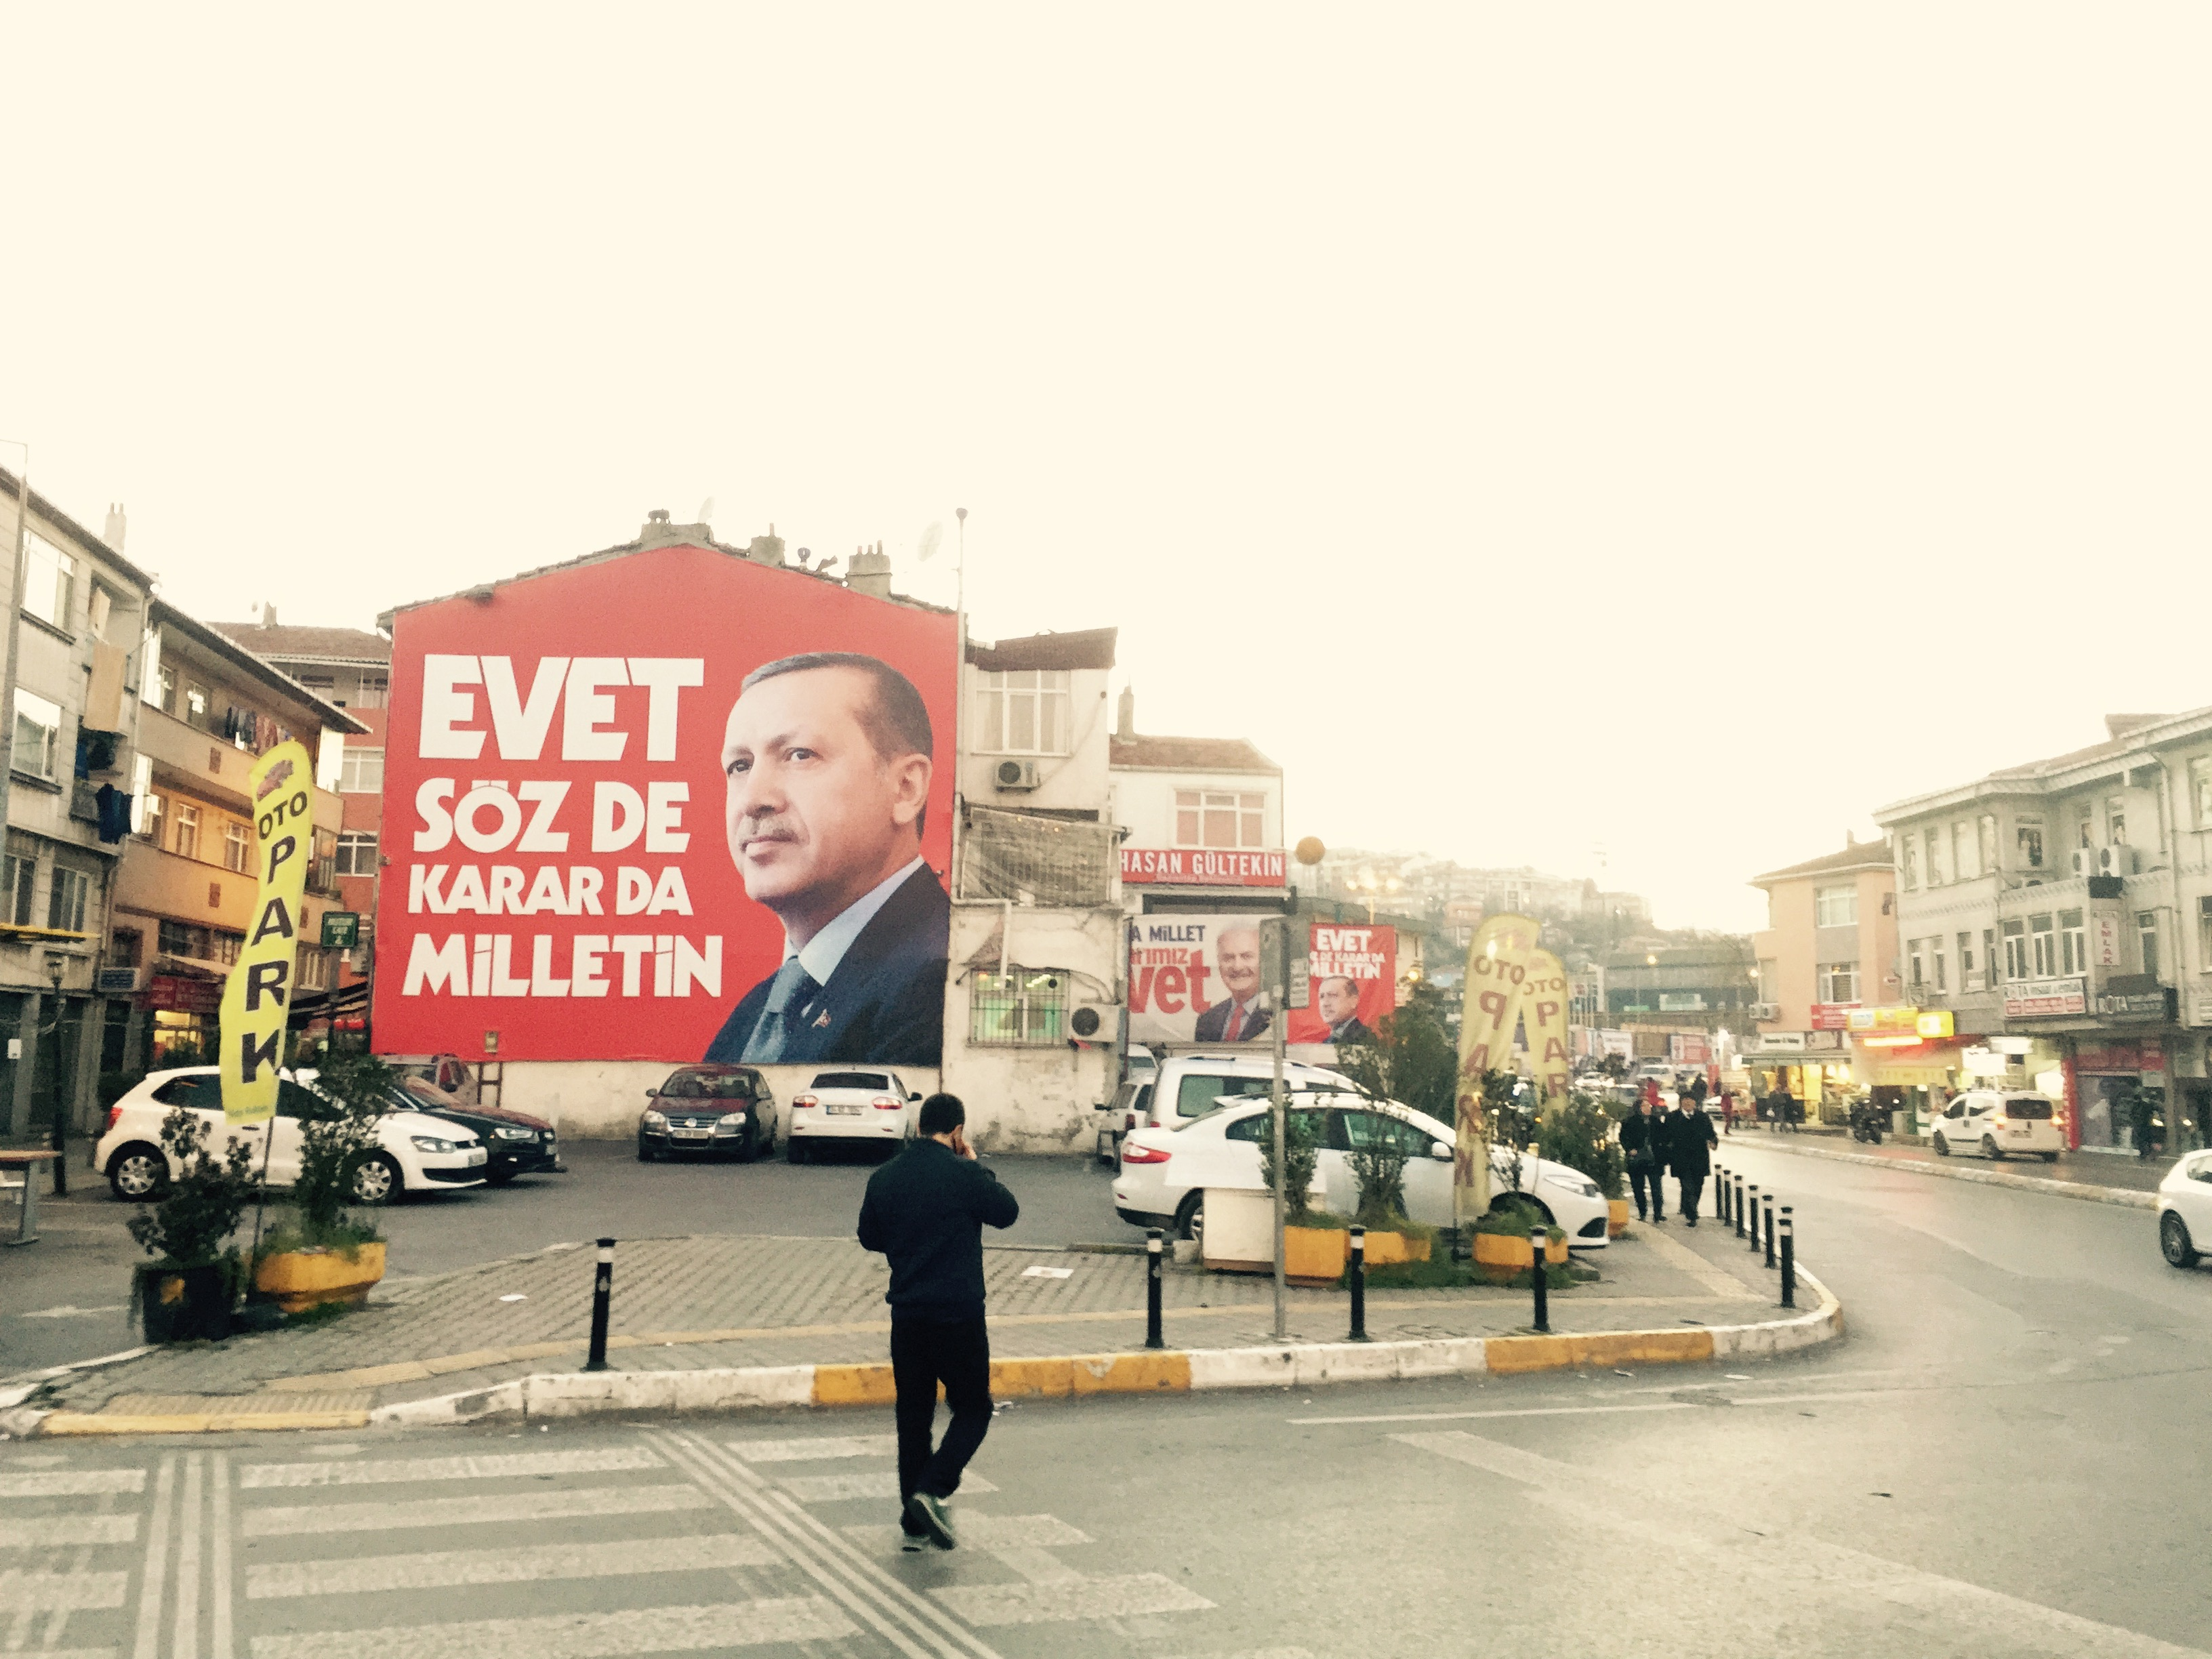 Turkish voters divided on key referendum